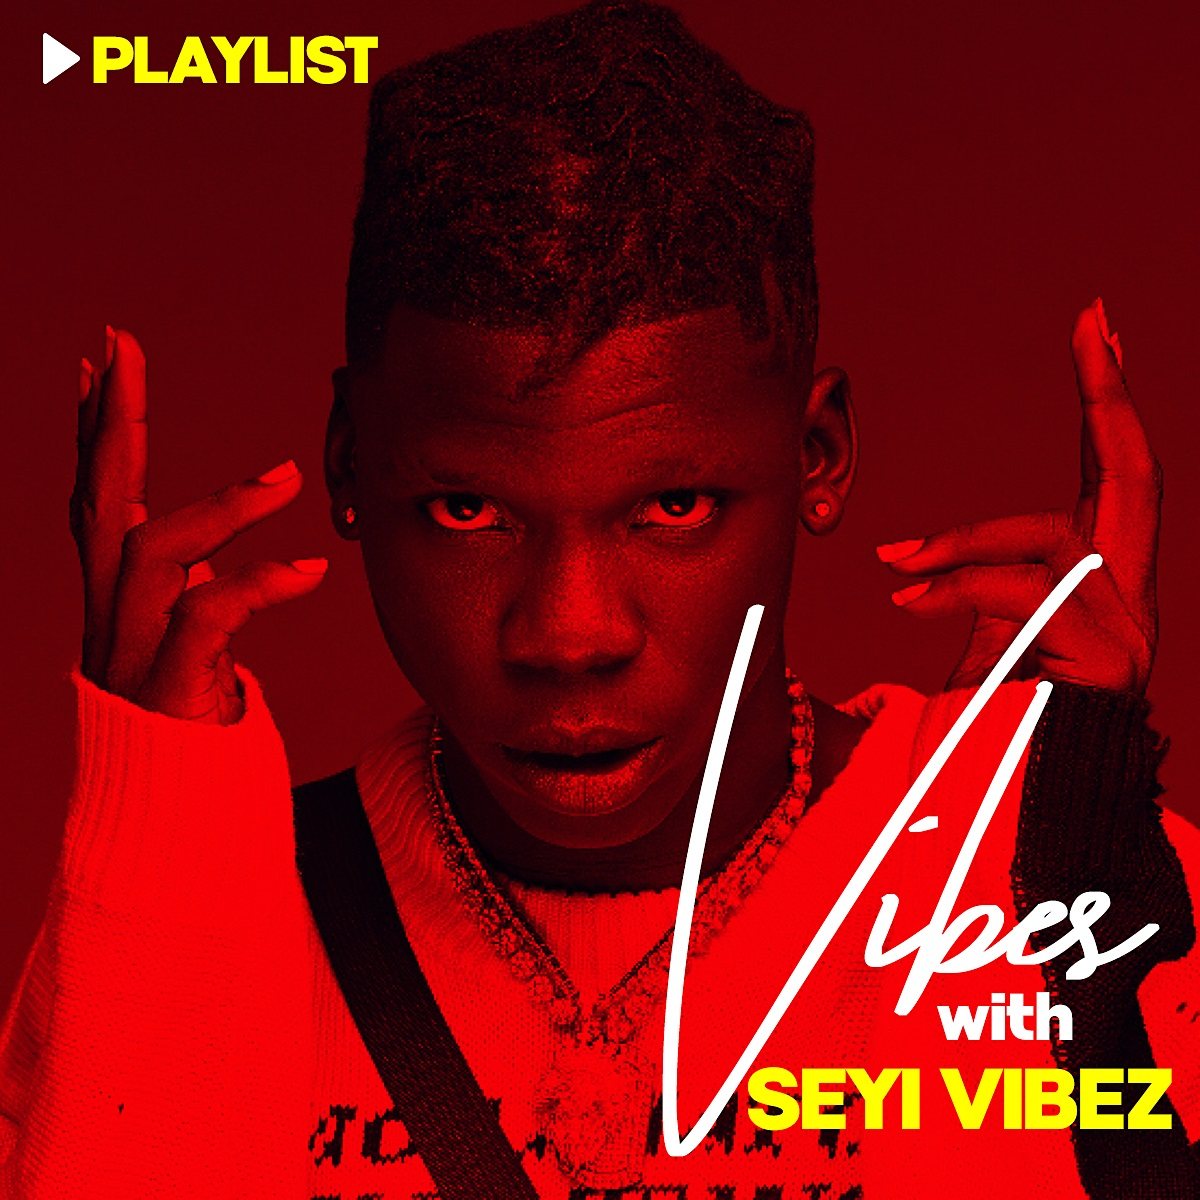 Vibes With Seyi Vibes, Best Of Seyi Vibez Playlist